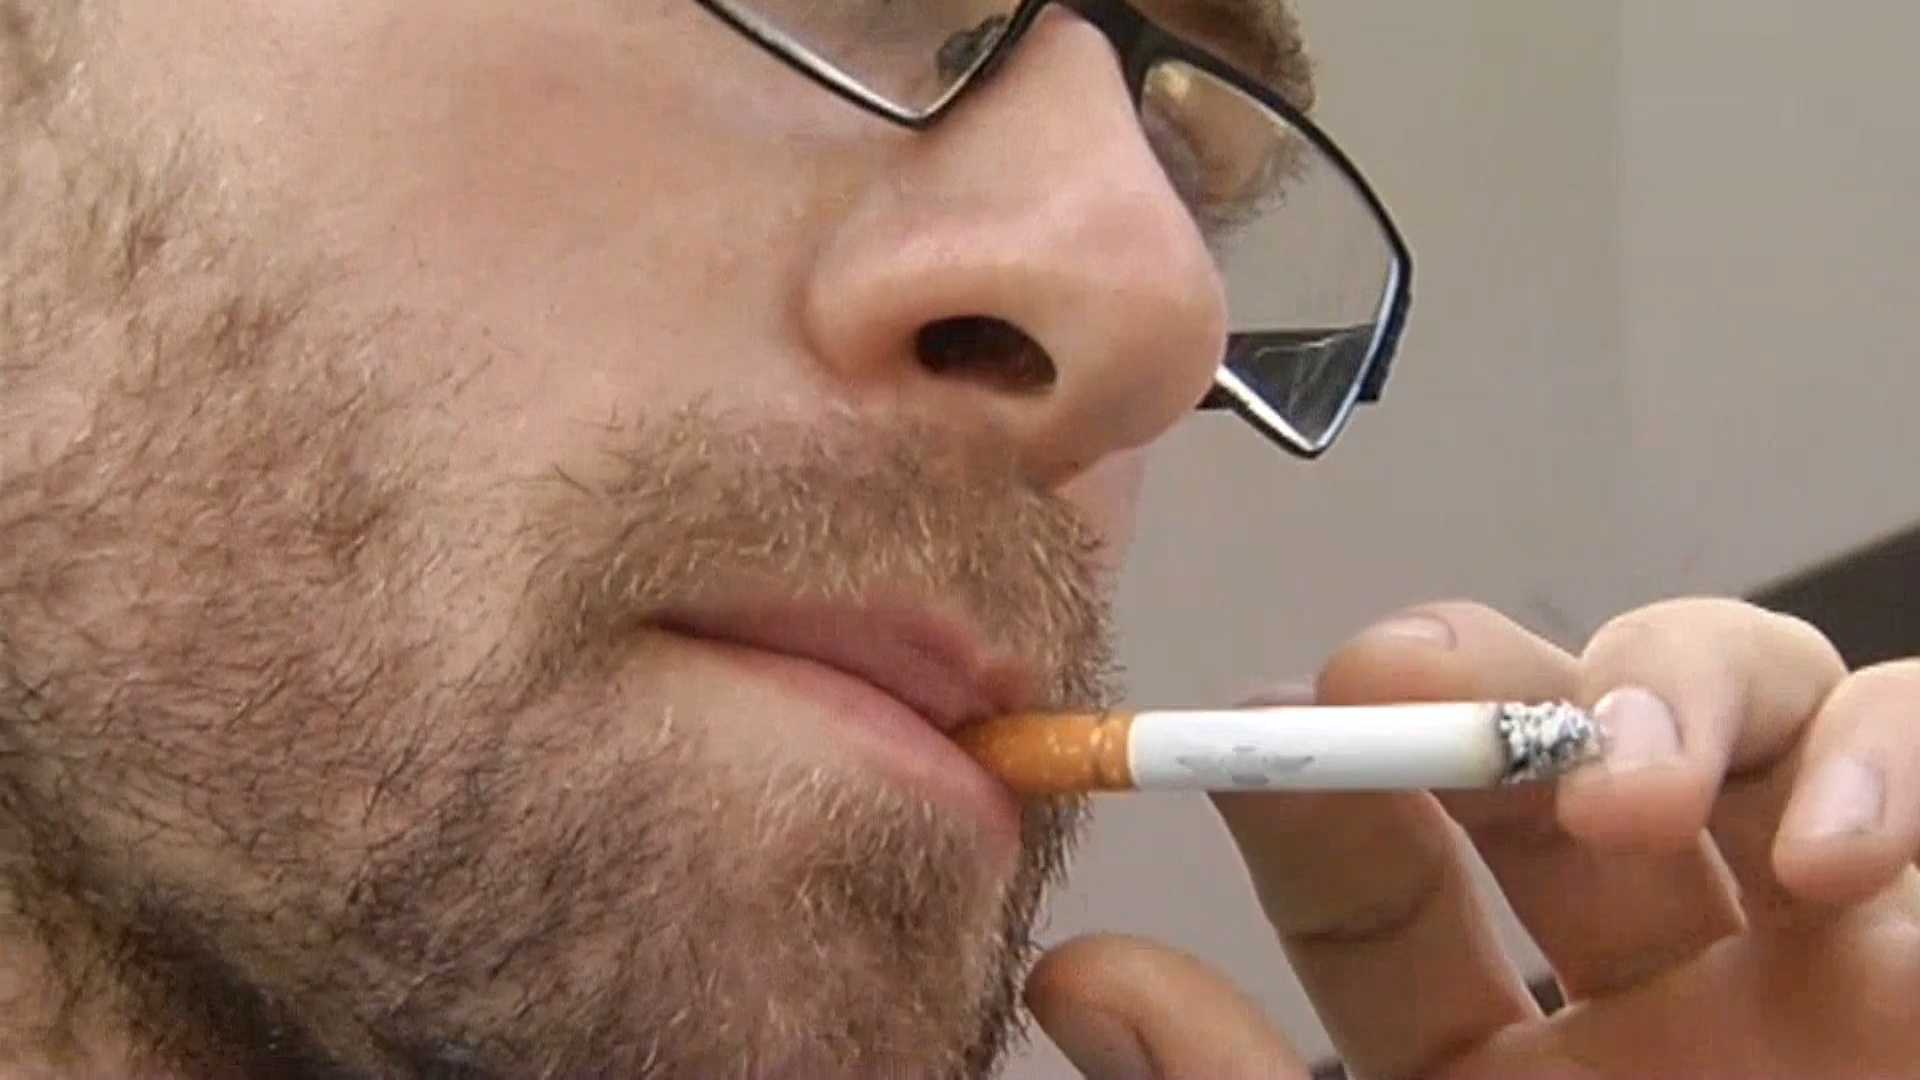 A proposed smoking ban ordinance is currently being discussed among city leaders in Mountain Brook.